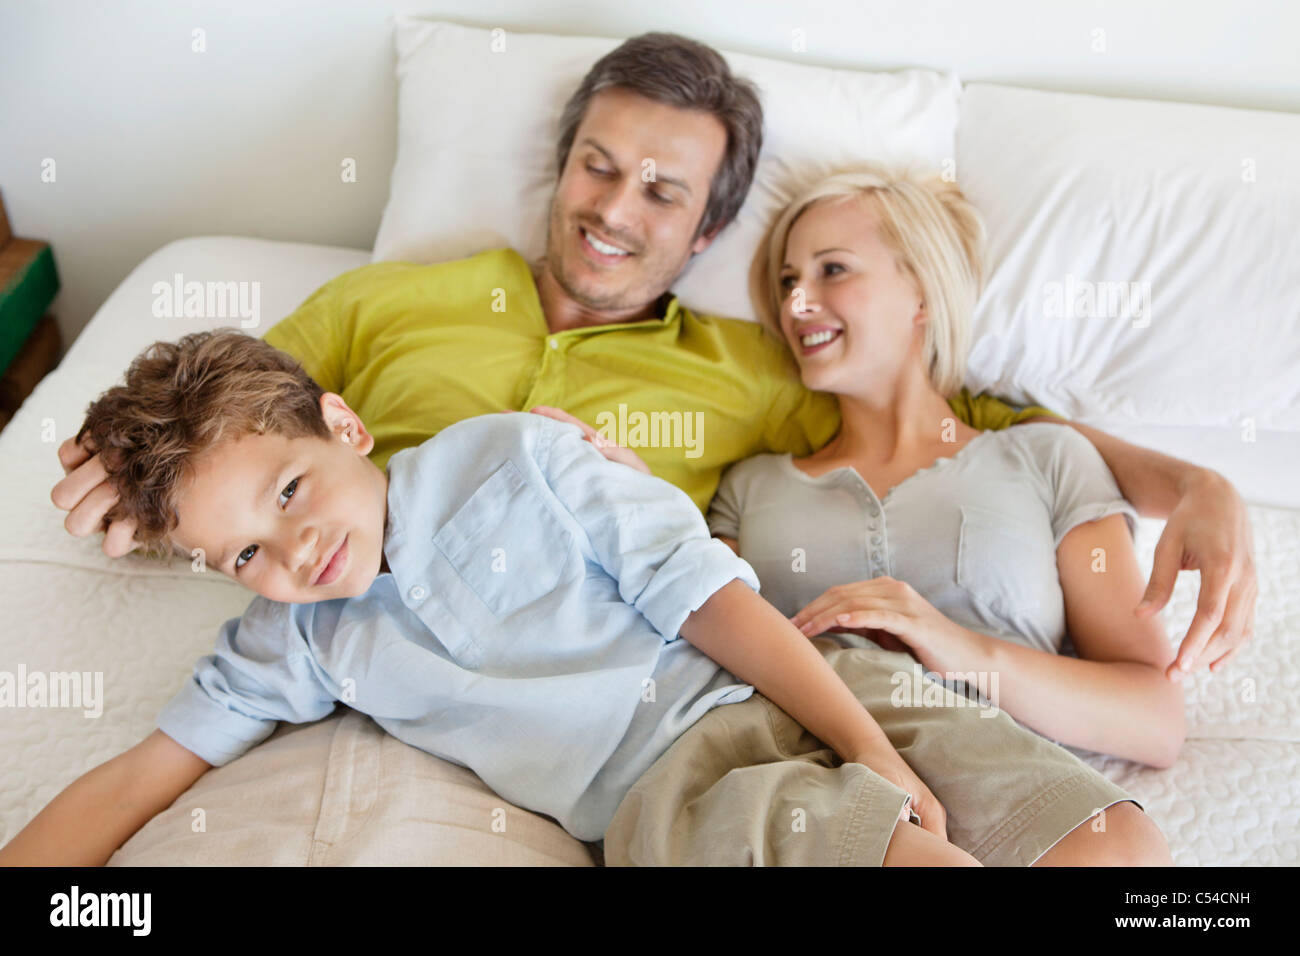 Parents with their son relaxing in bed - Stock Image